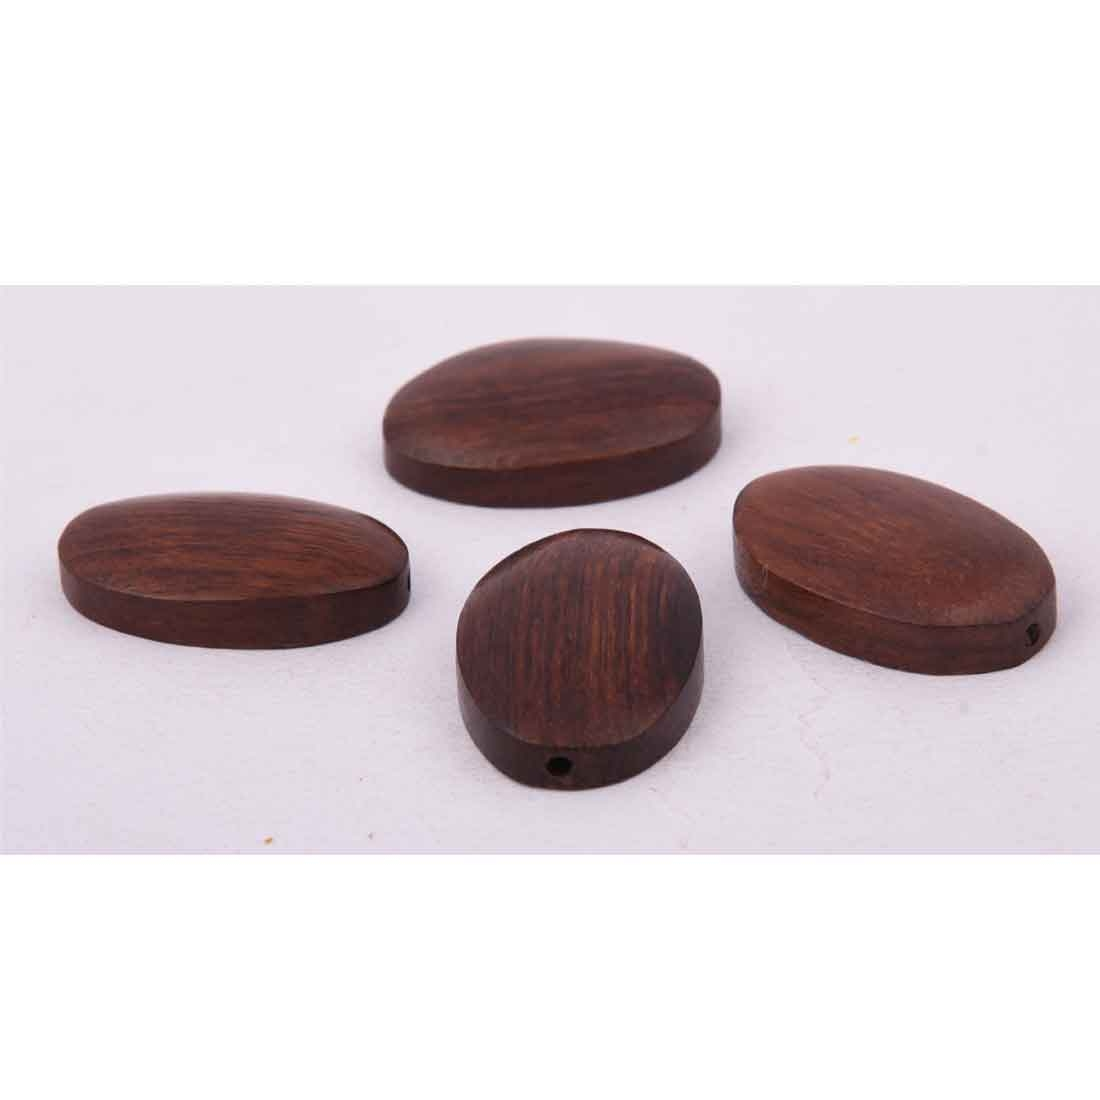 Beads India 1700095 Handcrafted Wooden Beads/Discounts Above 500 pcs